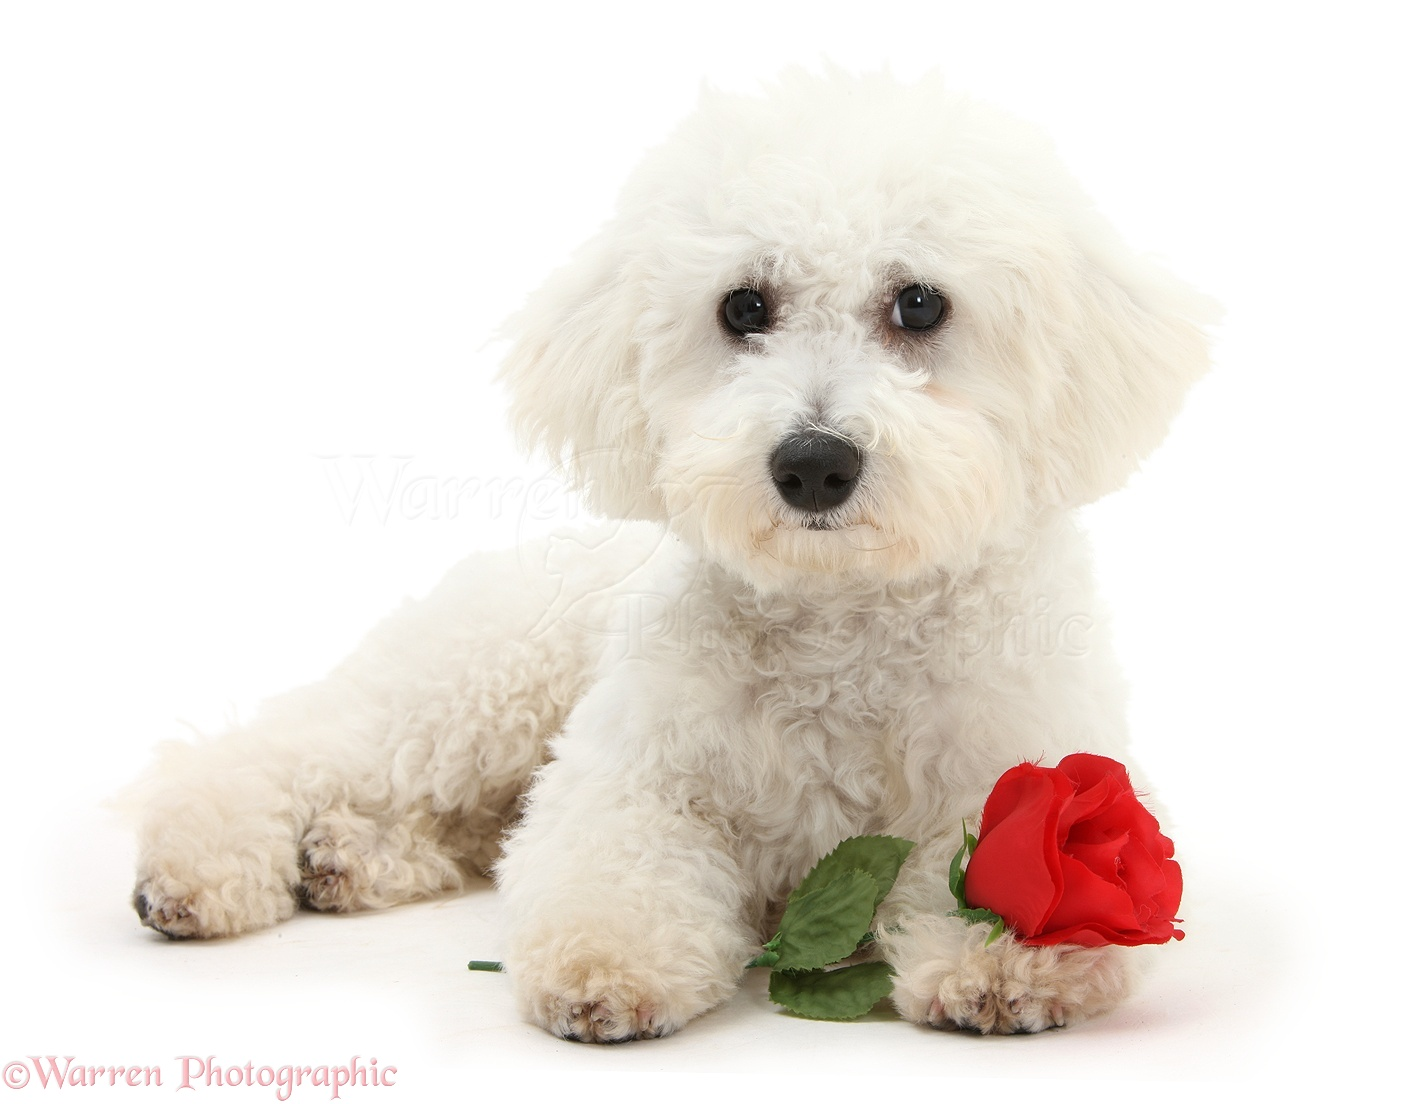 dog  bichon frise with a red rose photo wp21467